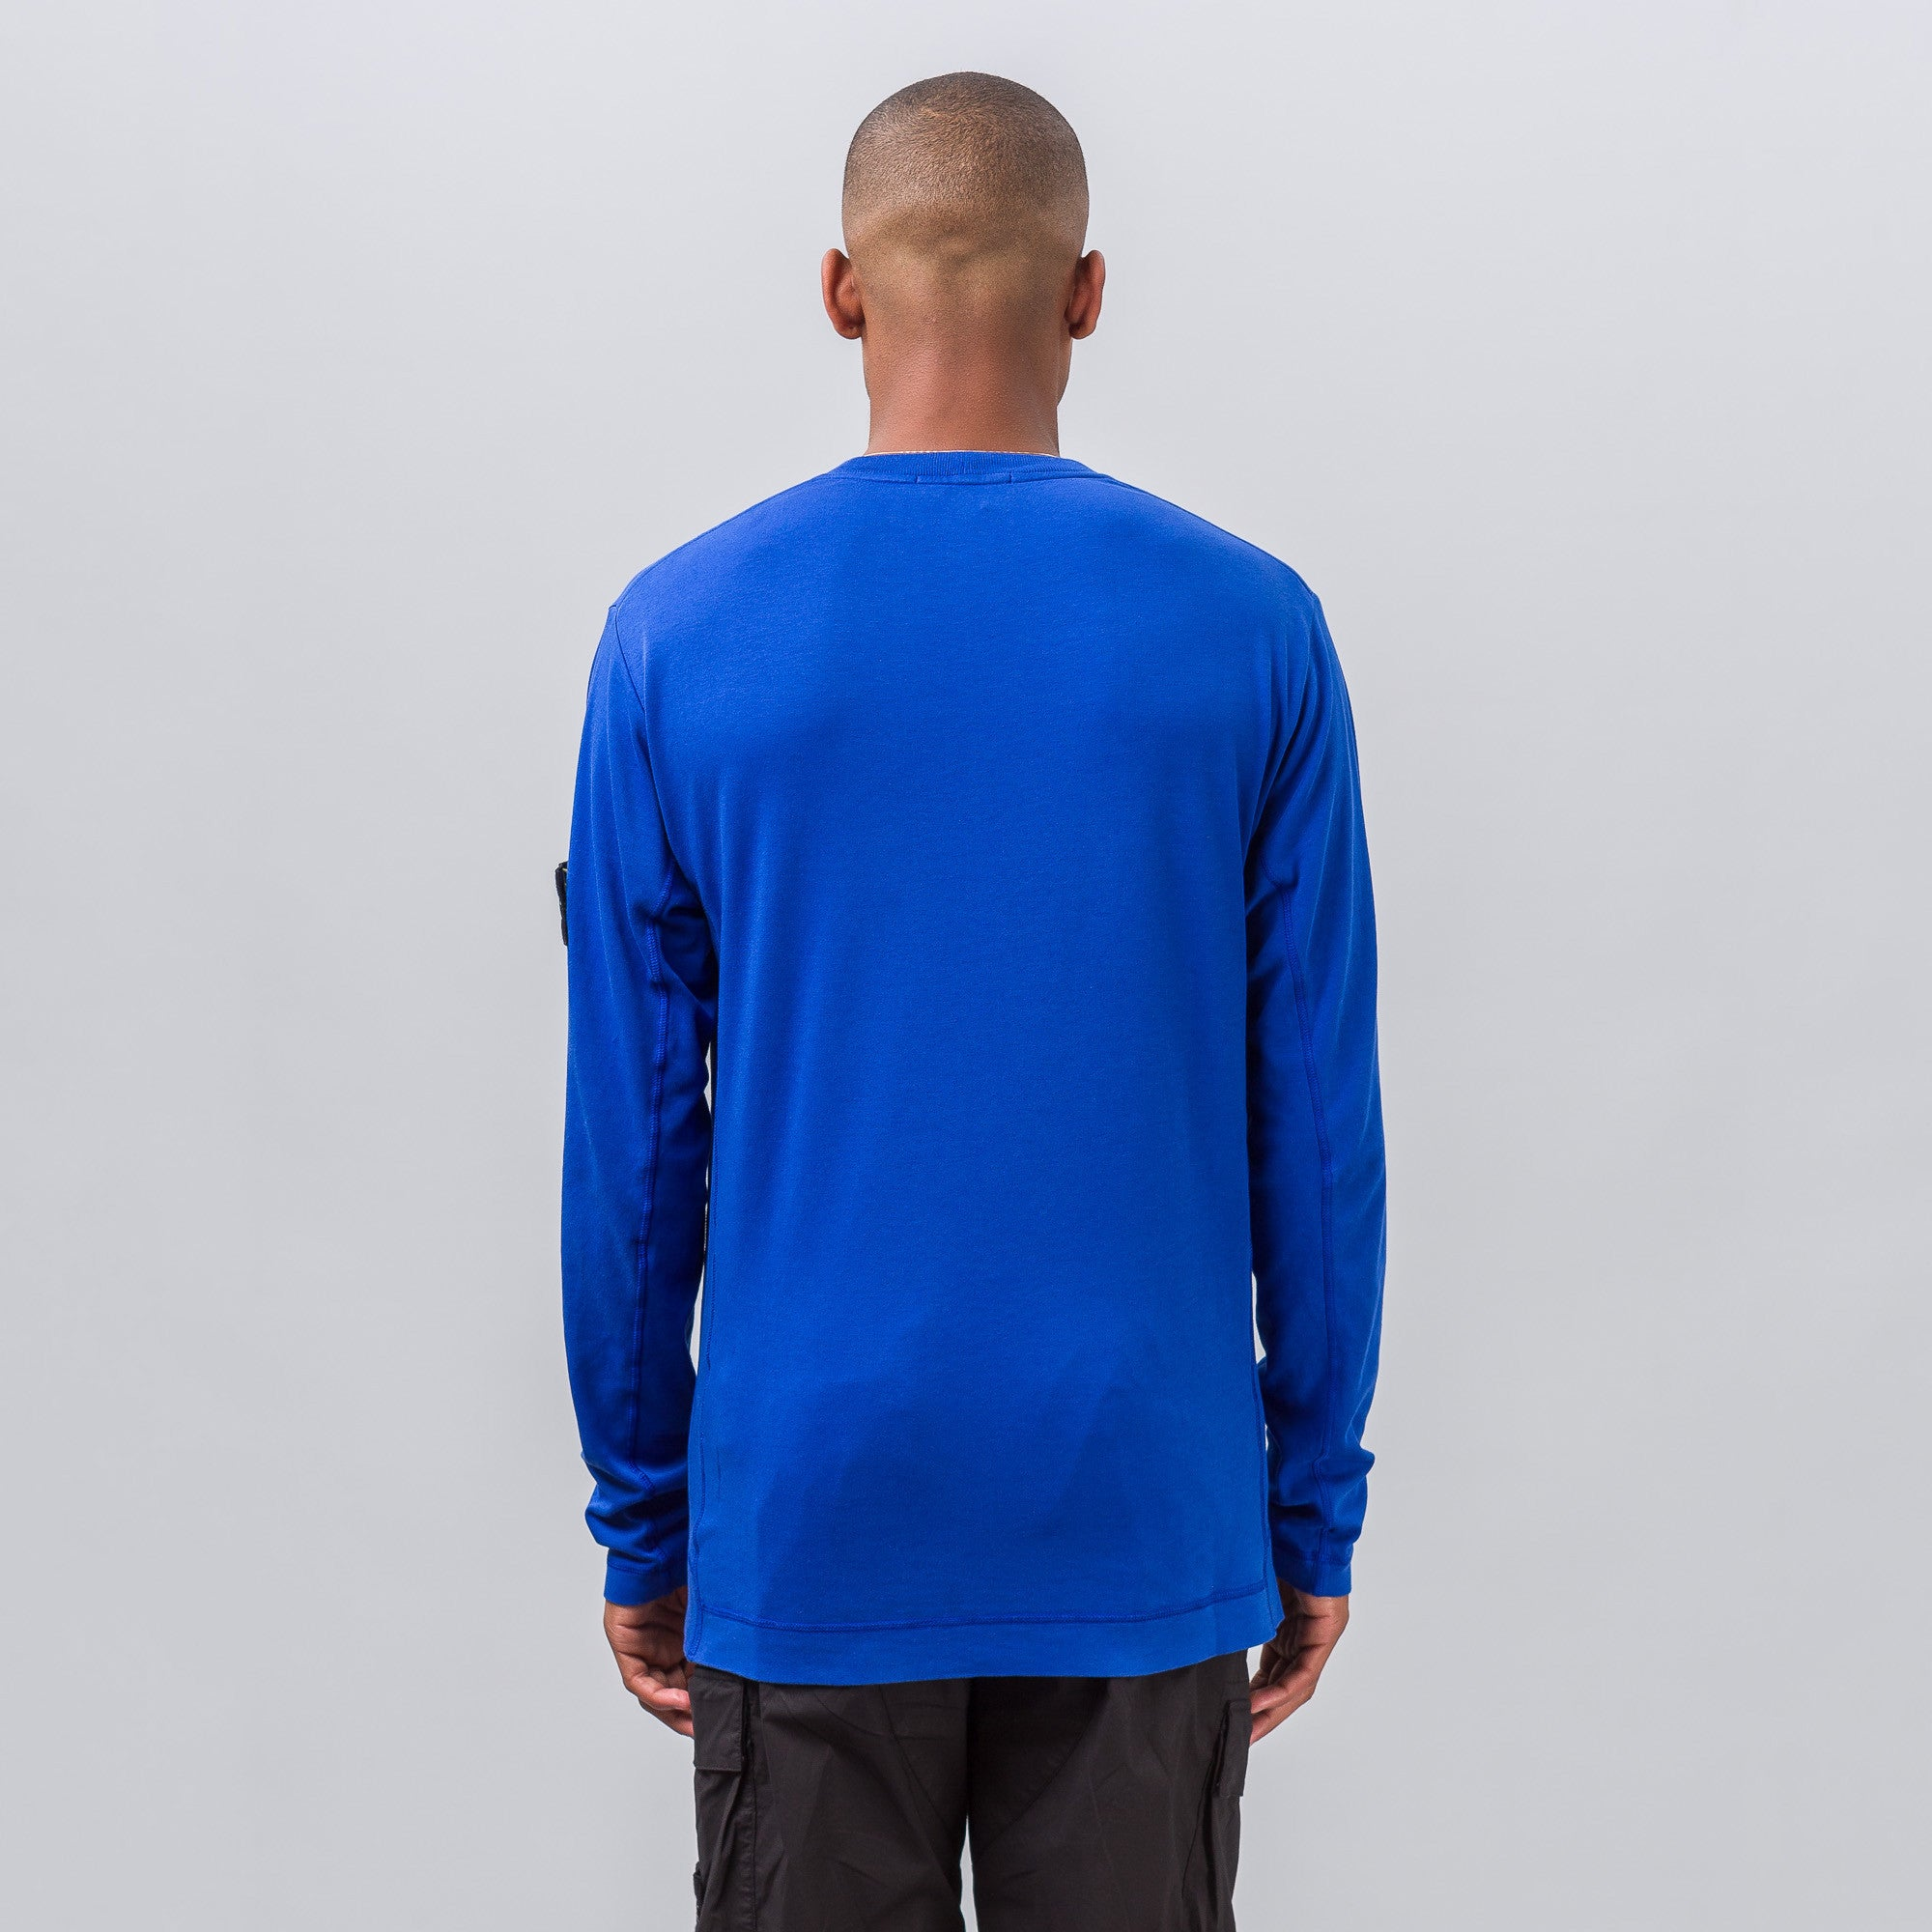 Patch Long-Sleeve Tee in Blue